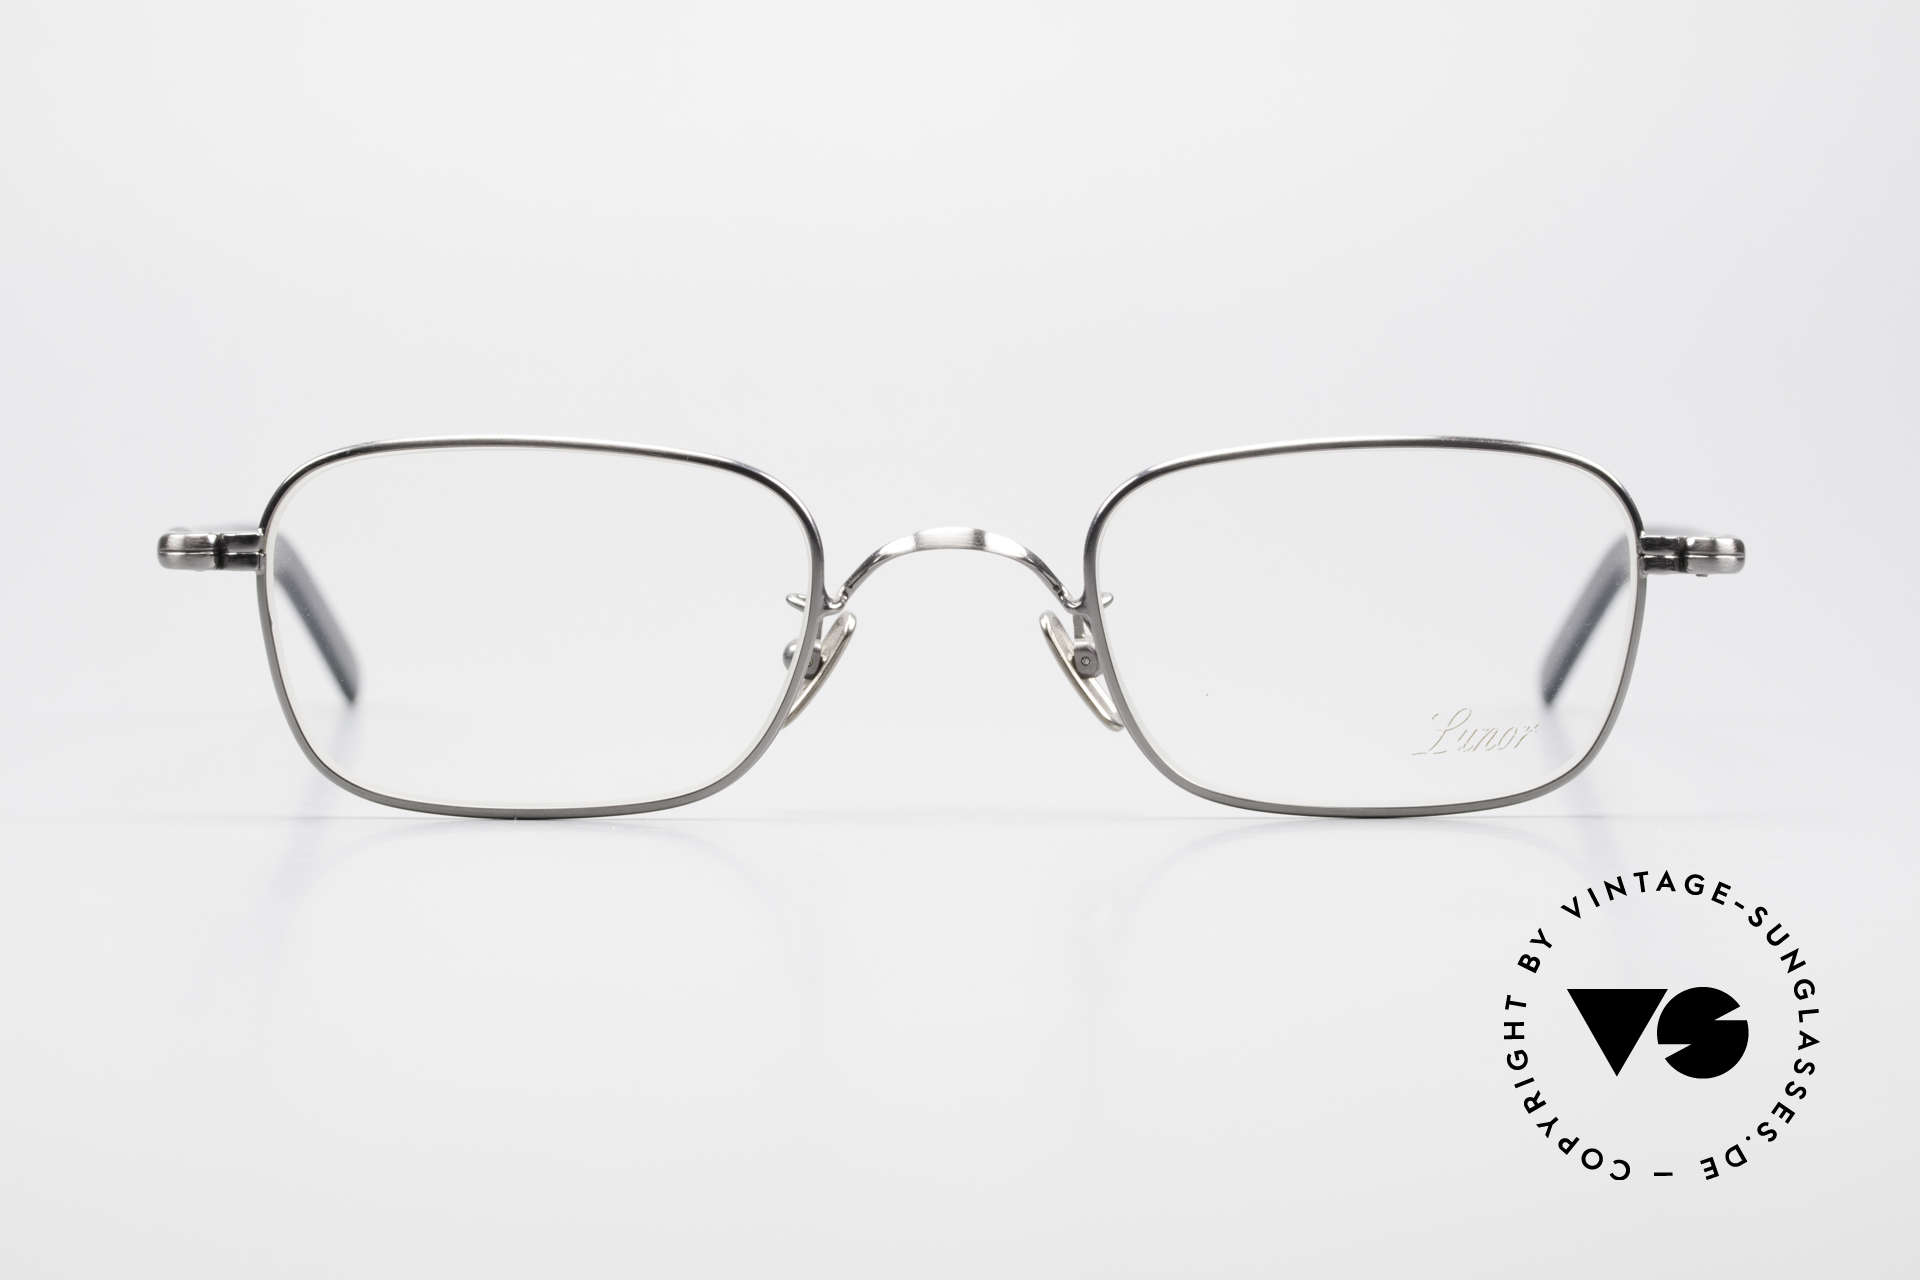 Lunor VA 109 Classic Gentlemen's Glasses, without ostentatious logos (but in a timeless elegance), Made for Men